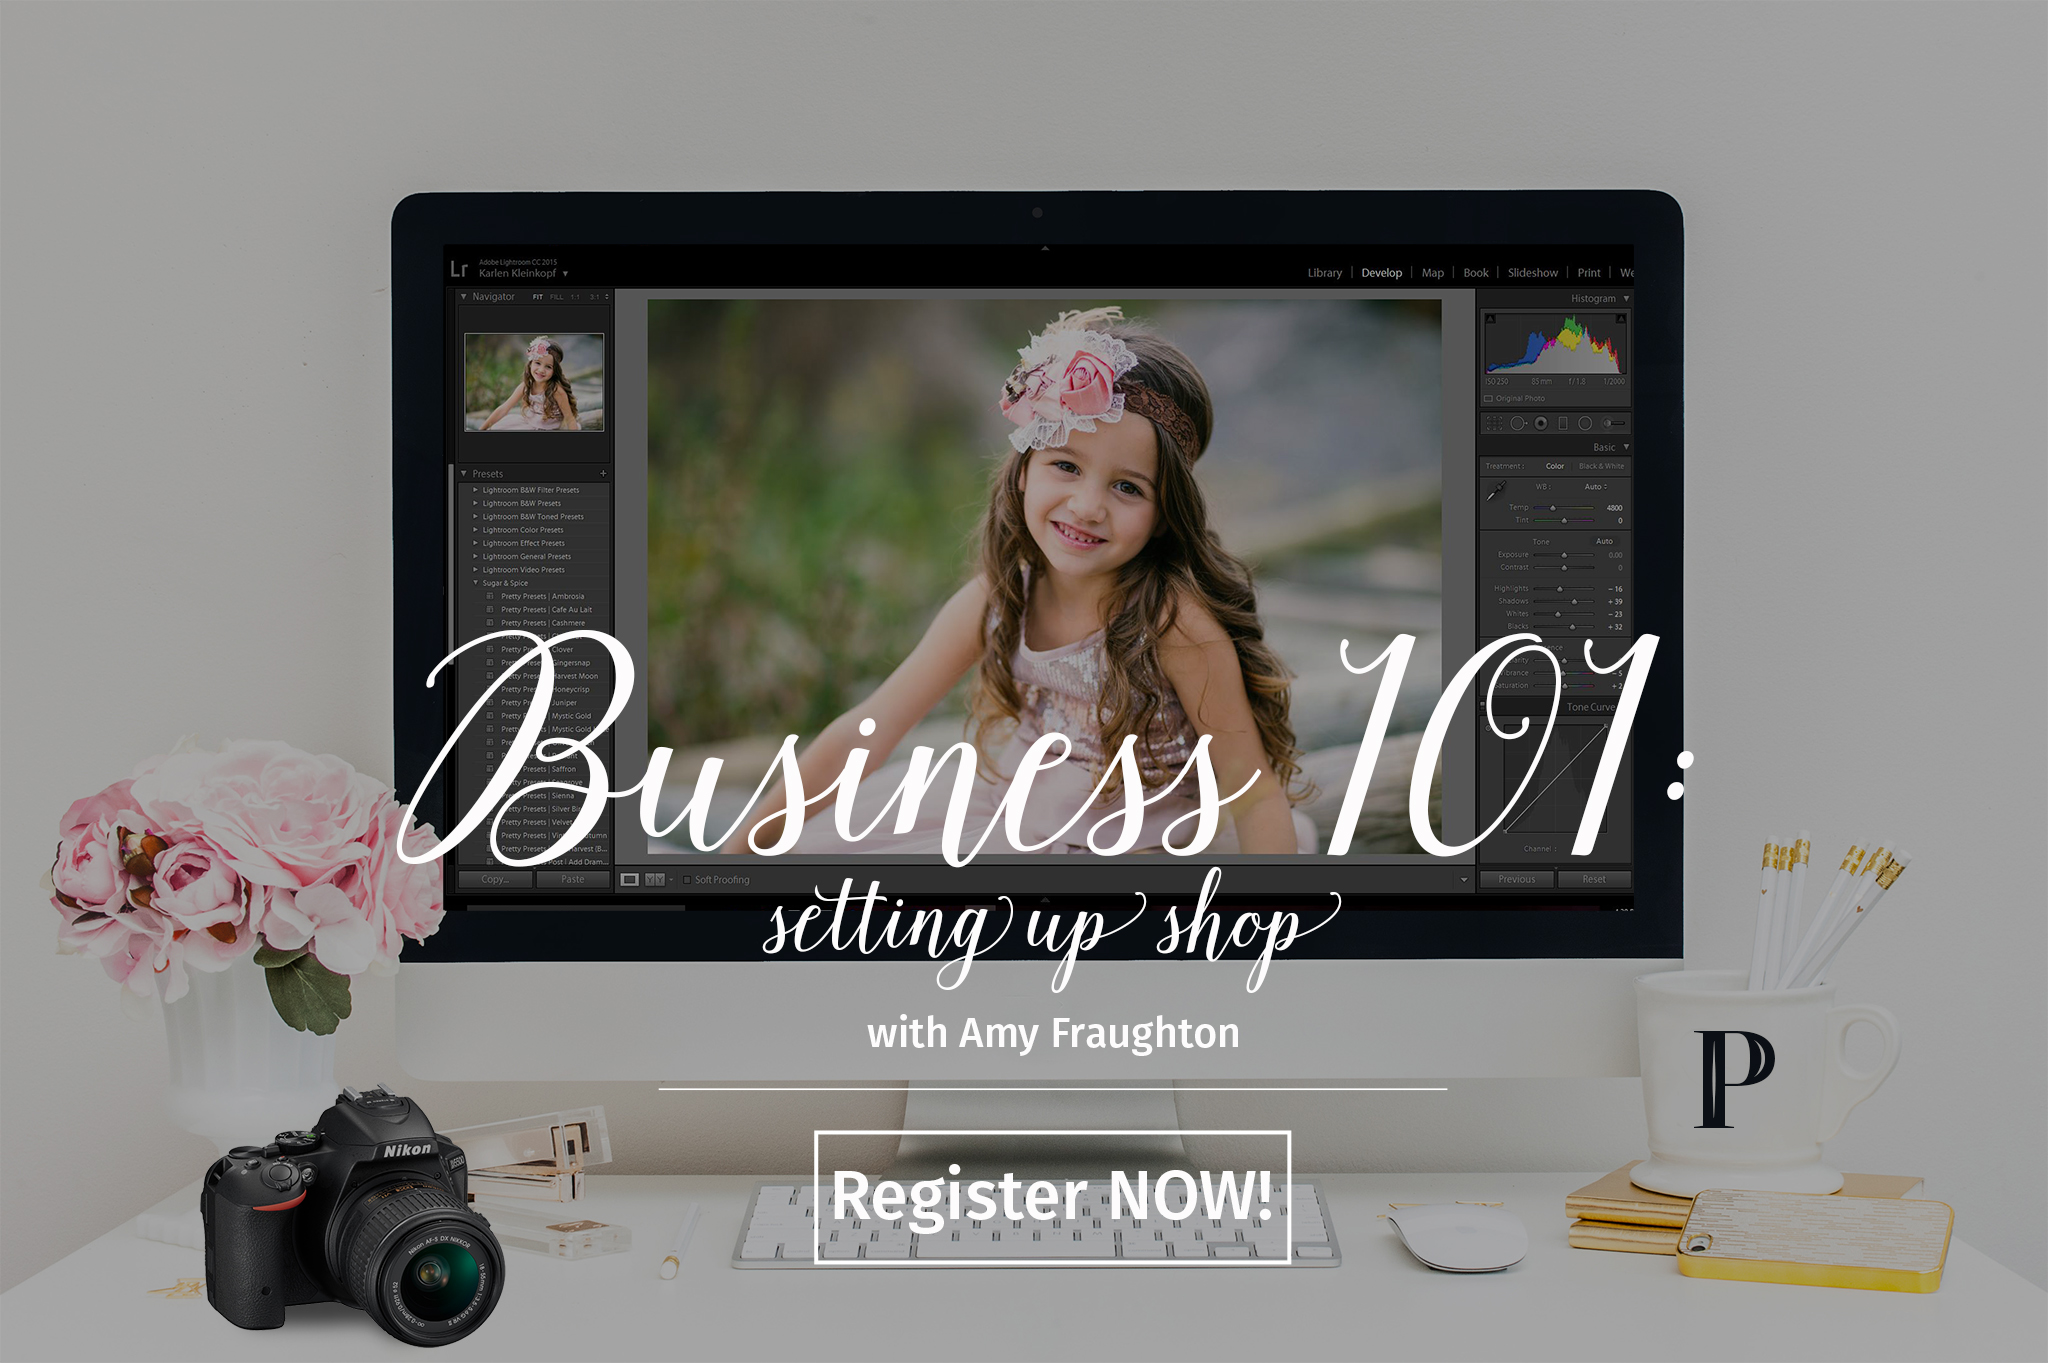 Business 101 for photographers